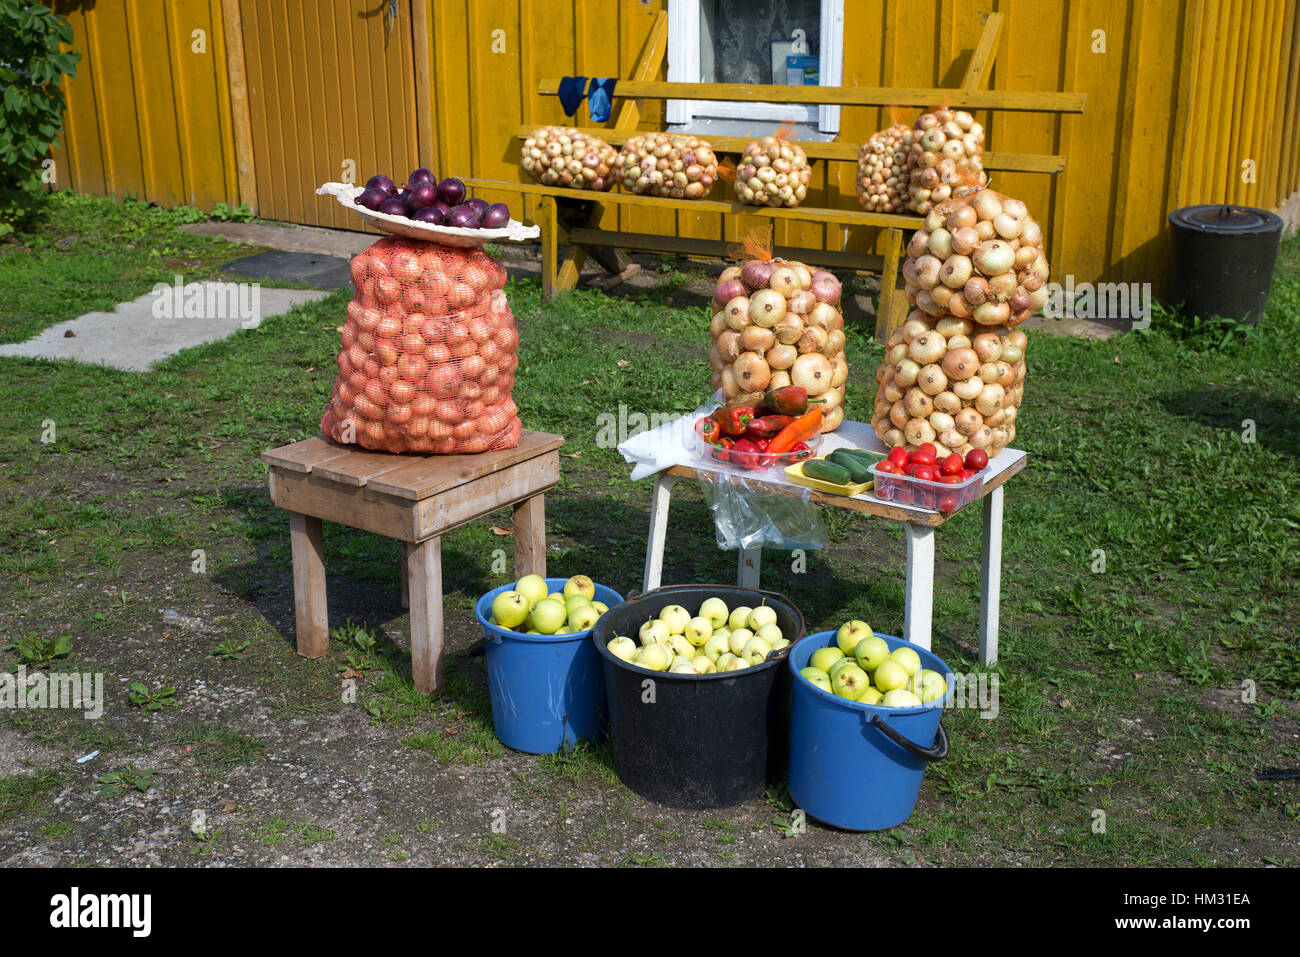 Sacks and buckets of onions and apples on sale in front of a traditional house, Kolkja, Tartu county, Estonia - Stock Image